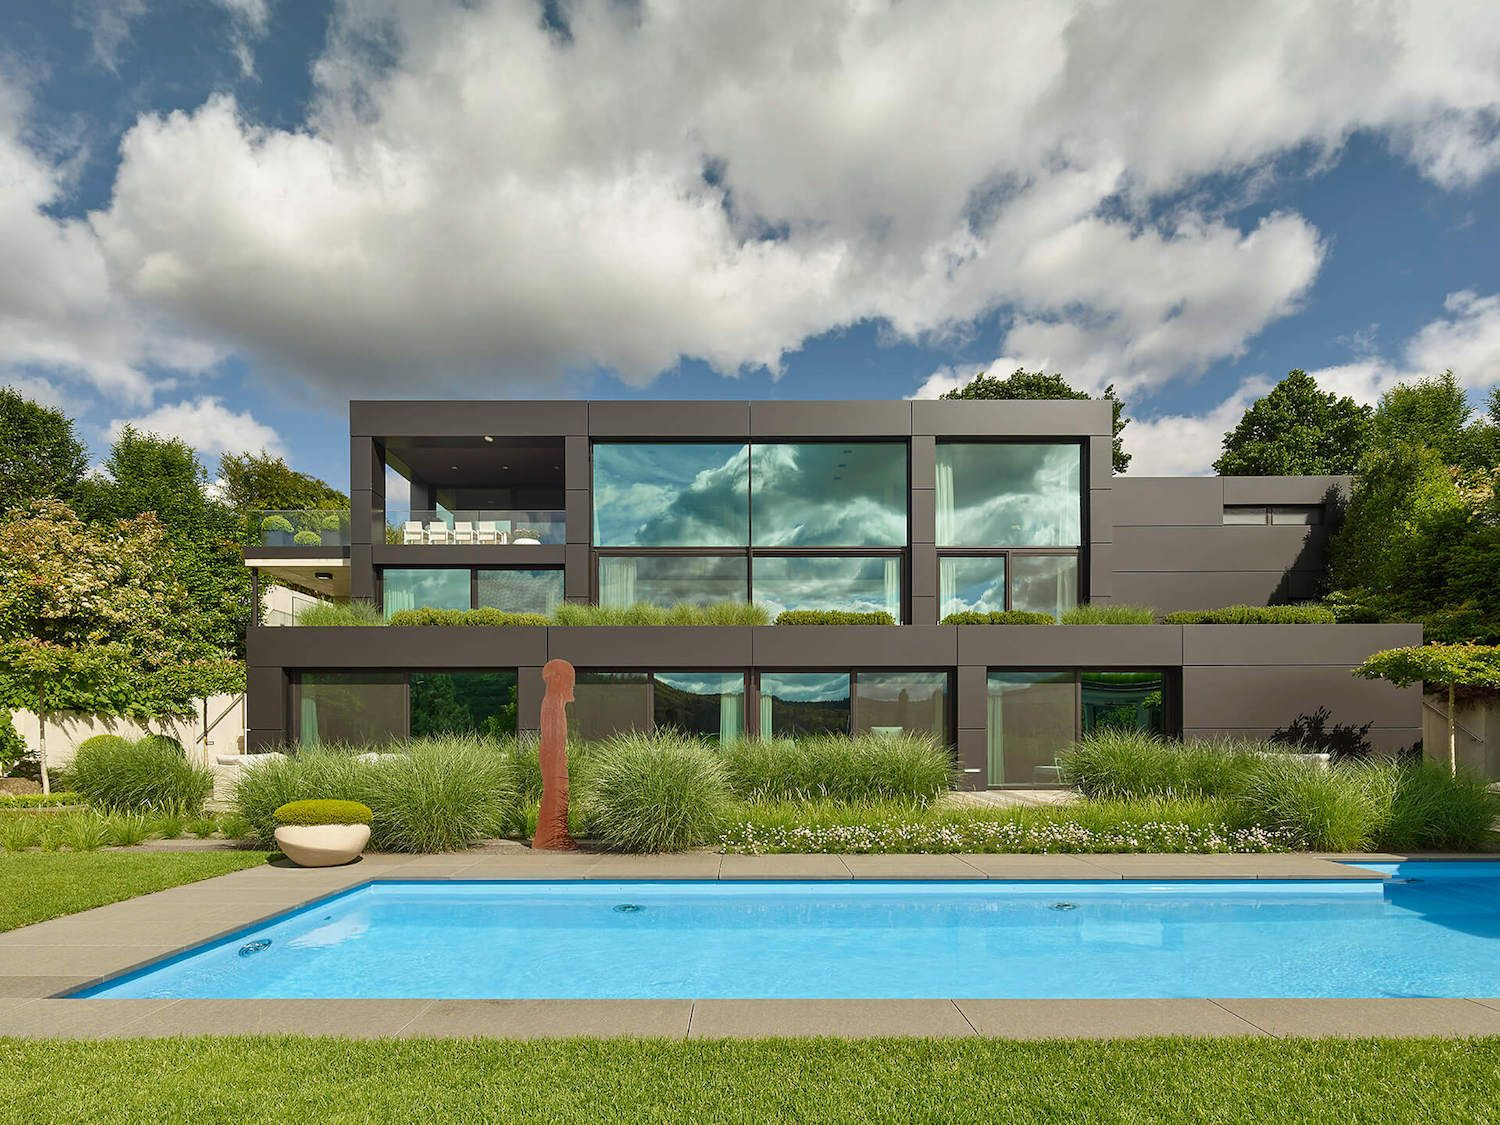 Amazing private three-storey residence is situated in Southern Germany Location: Southern Germany Year: 2016 Photo courtesy:Zooey Braun Thank you for reading this article!